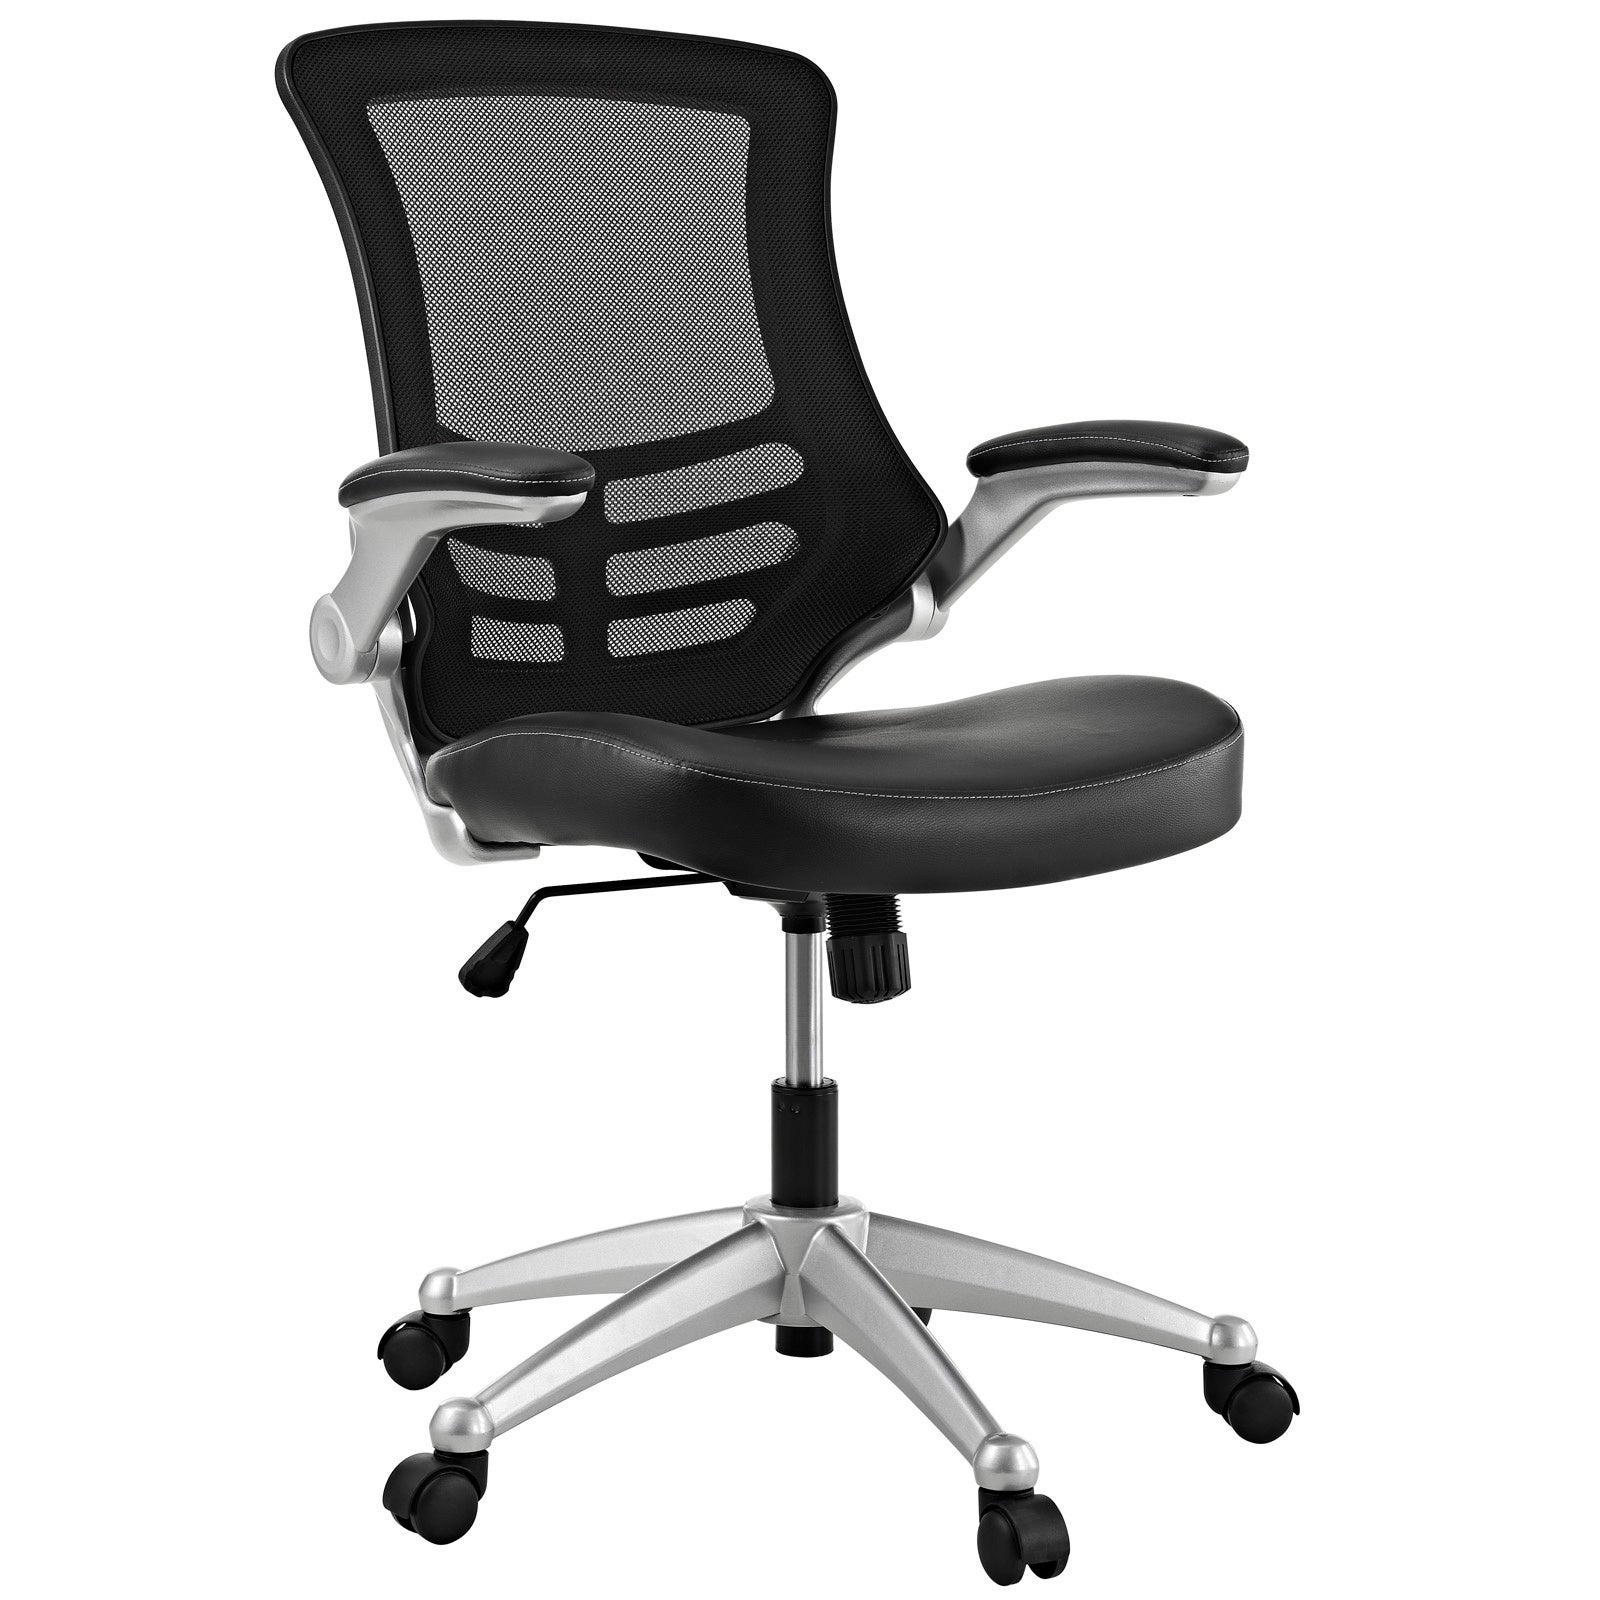 Modway Attainment Black Mesh Back and Leatherette Seat fice